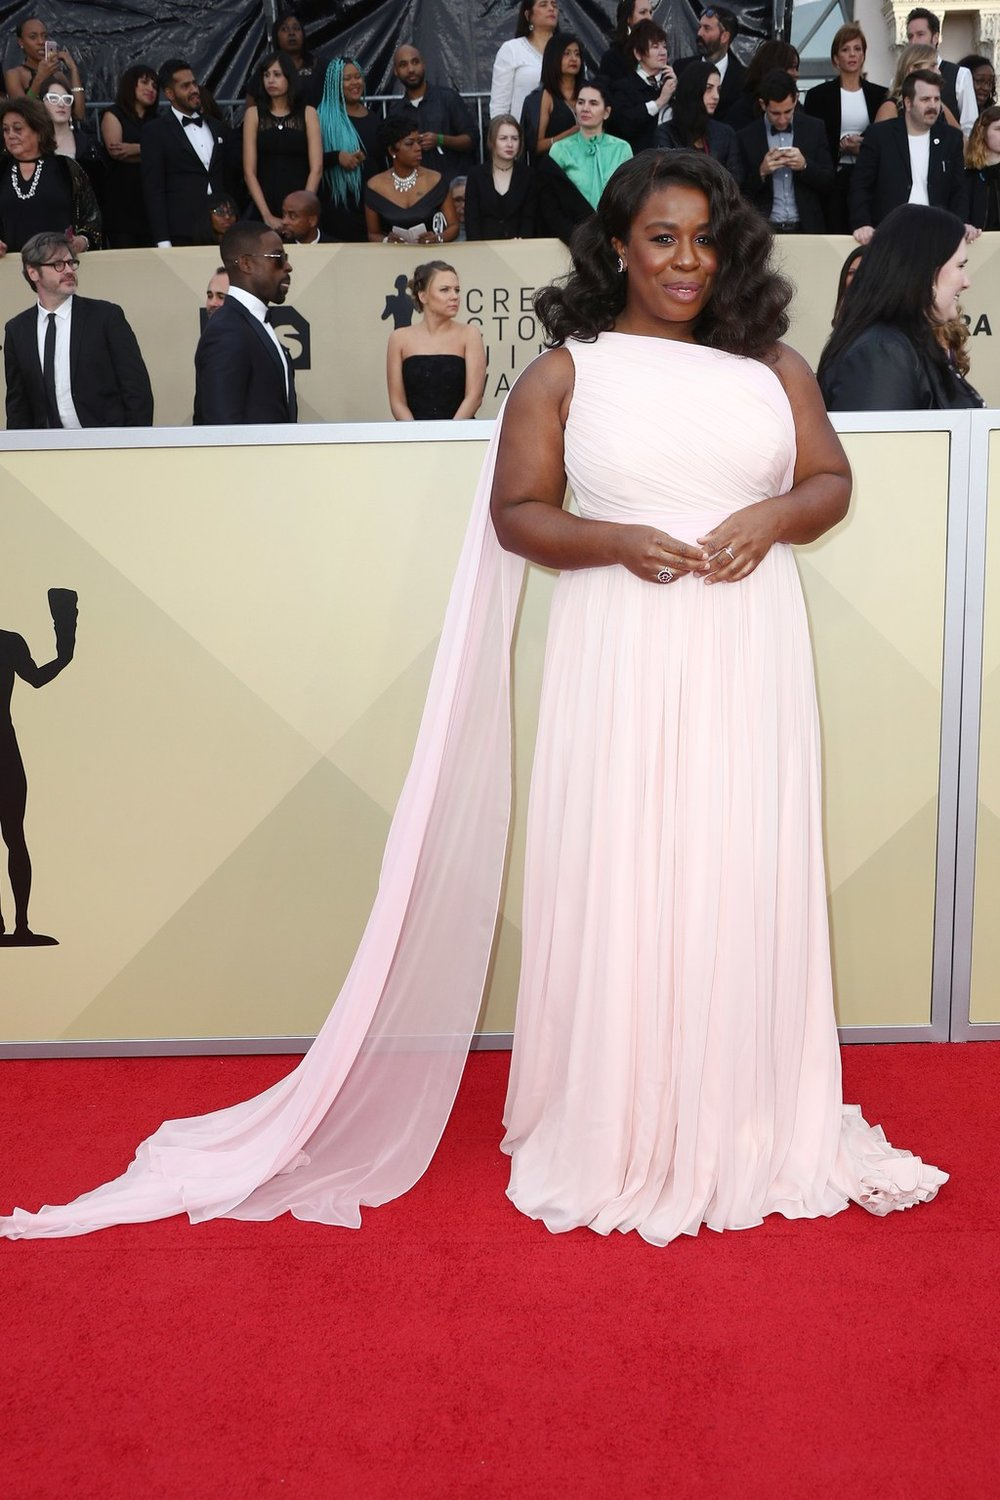 Uzo Aduba on the Red Carpet of the 2018 SAG AWARDS